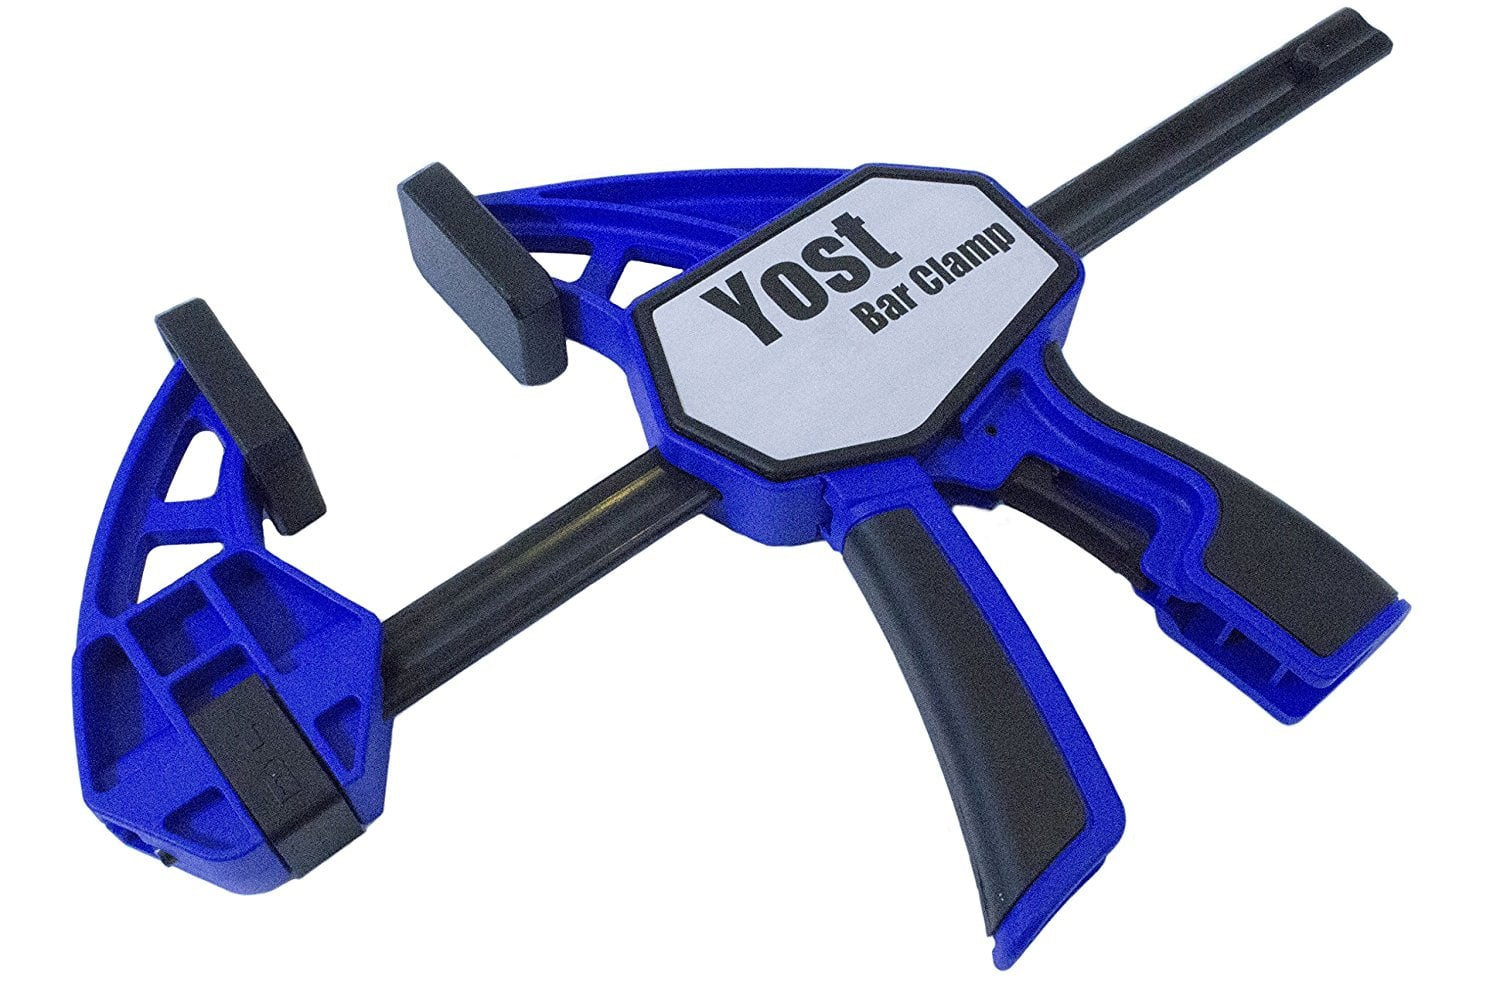 "Select Yost Vises and Clamp Tools: Up to 40% Off: 24"" Yost 330 lbs Bar Clamp $16.19, 4"" Yost BV-4 Bench Vise $33.75 & More via Amazon"